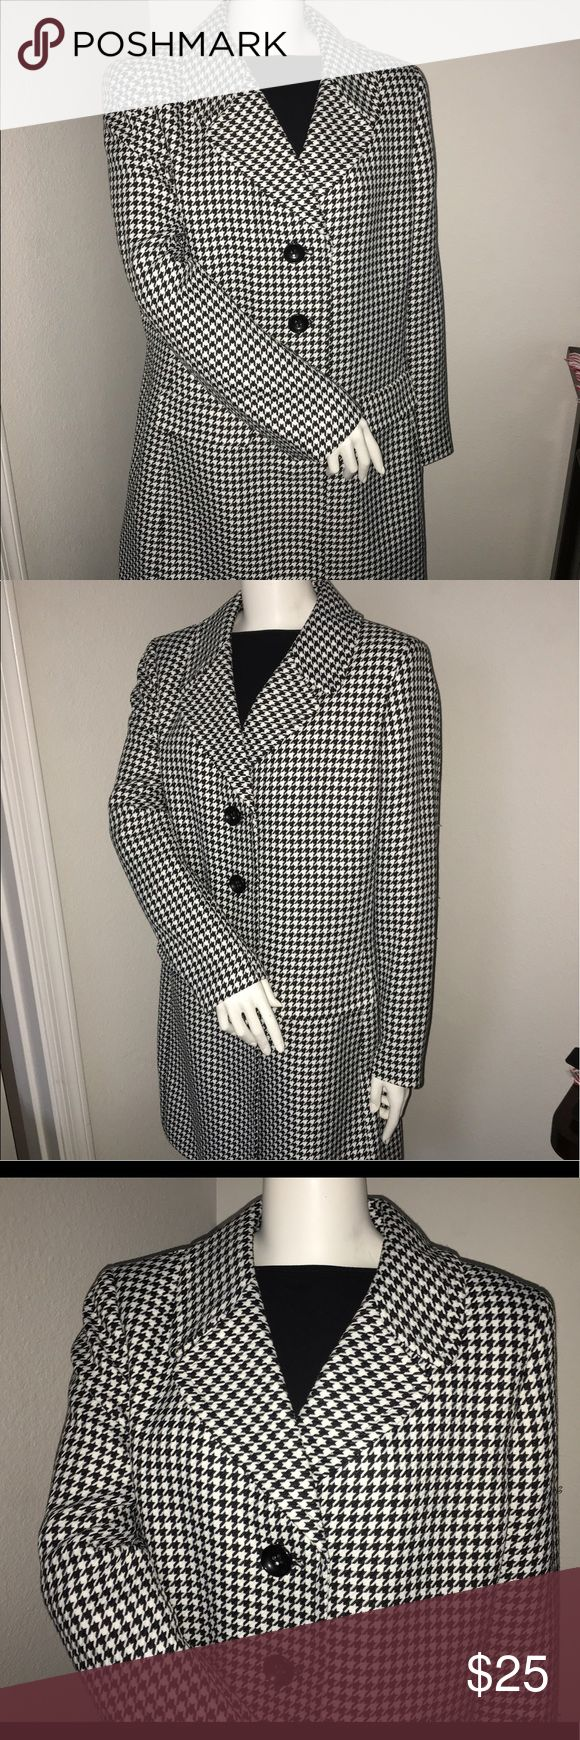 "Le Suit plus size peacoat sz: 18 Le Suit brand Thank you for viewing my listing, for sale is a women's, Le Suit brand, black & white, Longsleeve, but and up/down, pea coat, with shoulder pads.  Plus size: 18  If you have any questions or would like additional photos please feel free to ask.  From under one arm to under the other measures appx 23"" from the top of the shoulder to the bottom of the T-shirt measures appx 37"" Le Suit Jackets & Coats Pea Coats"